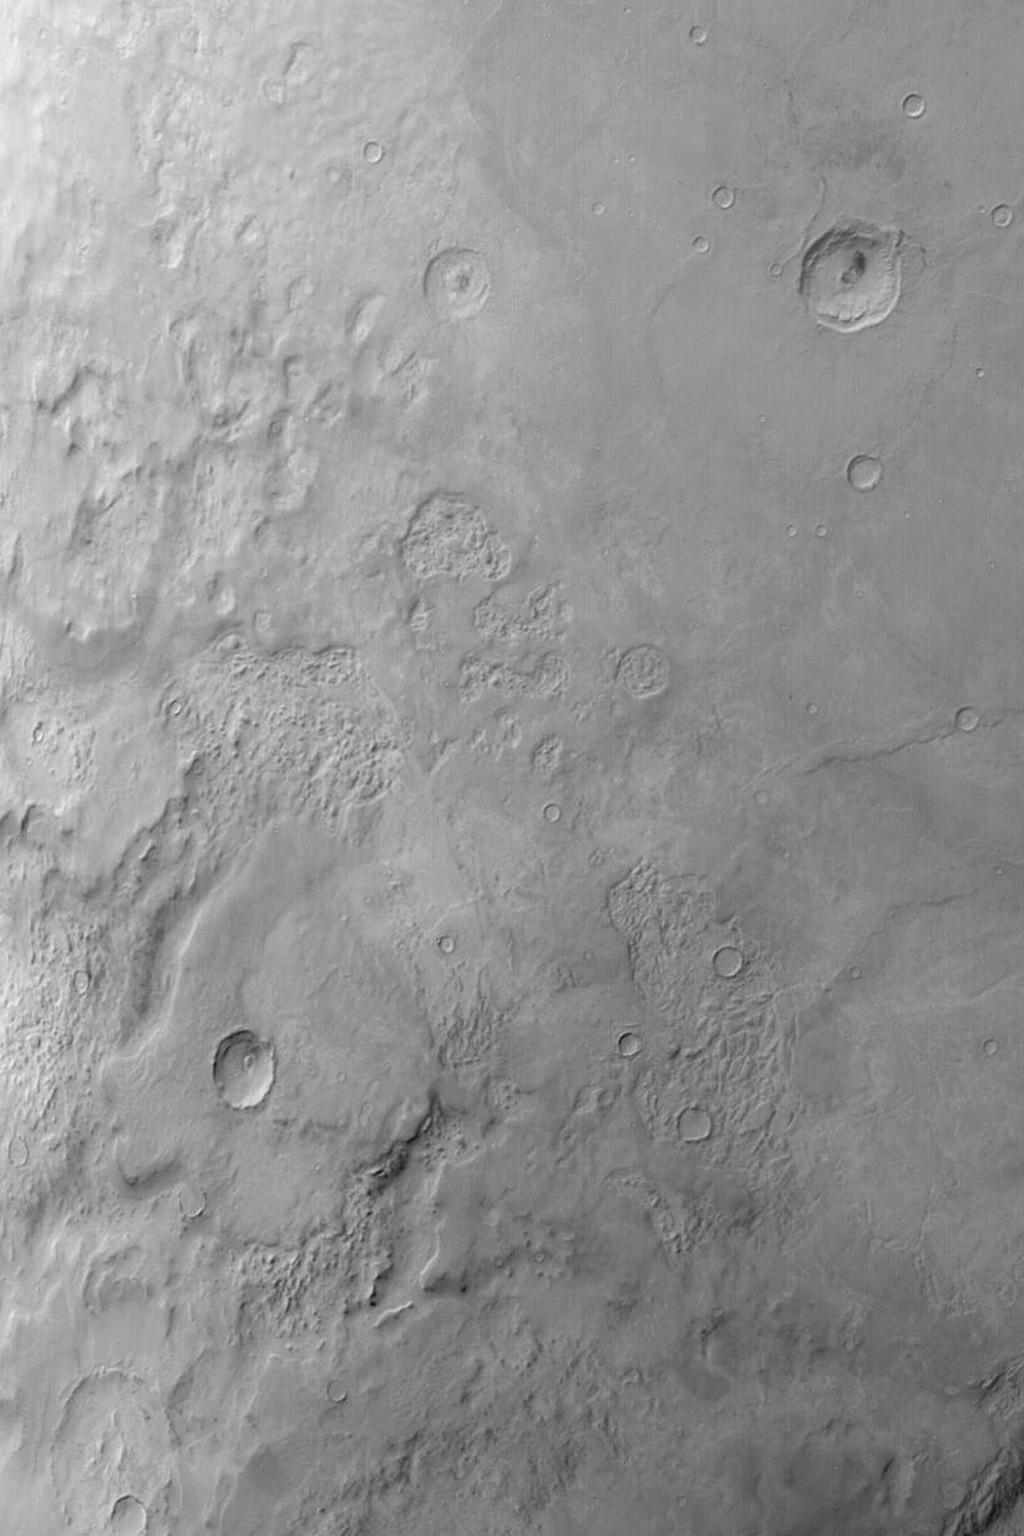 NASA's Mars Global Surveyor shows Hellas Planitia on Mars, the floor of a giant basin that originally formed by the impact of a large comet or asteroid.